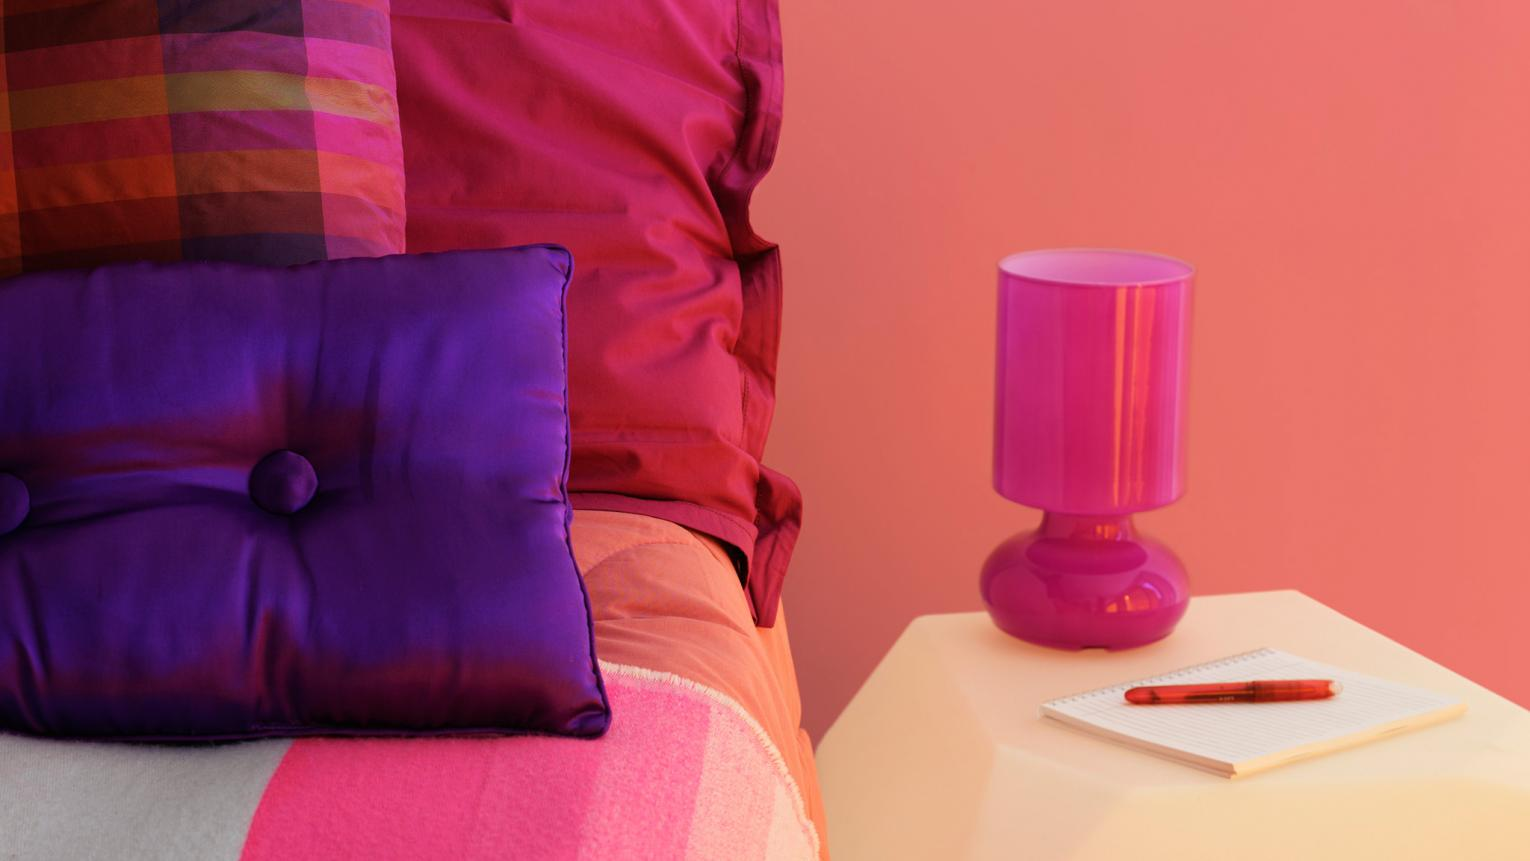 Use bold passionate pinks to turn up the heat in your bedroom.